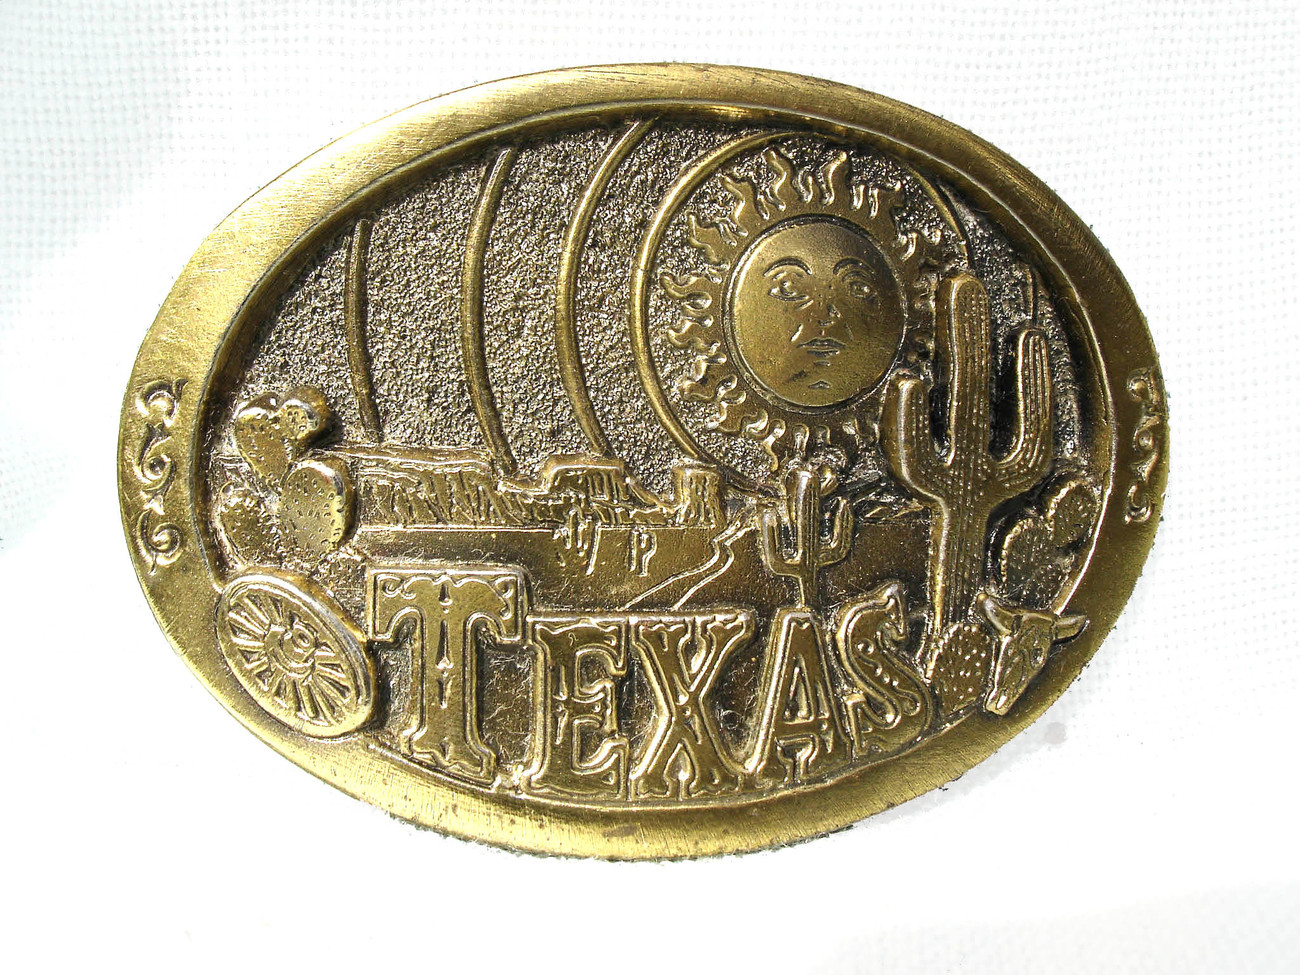 Vintage Texas Belt Buckle Art Solid Brass  1980